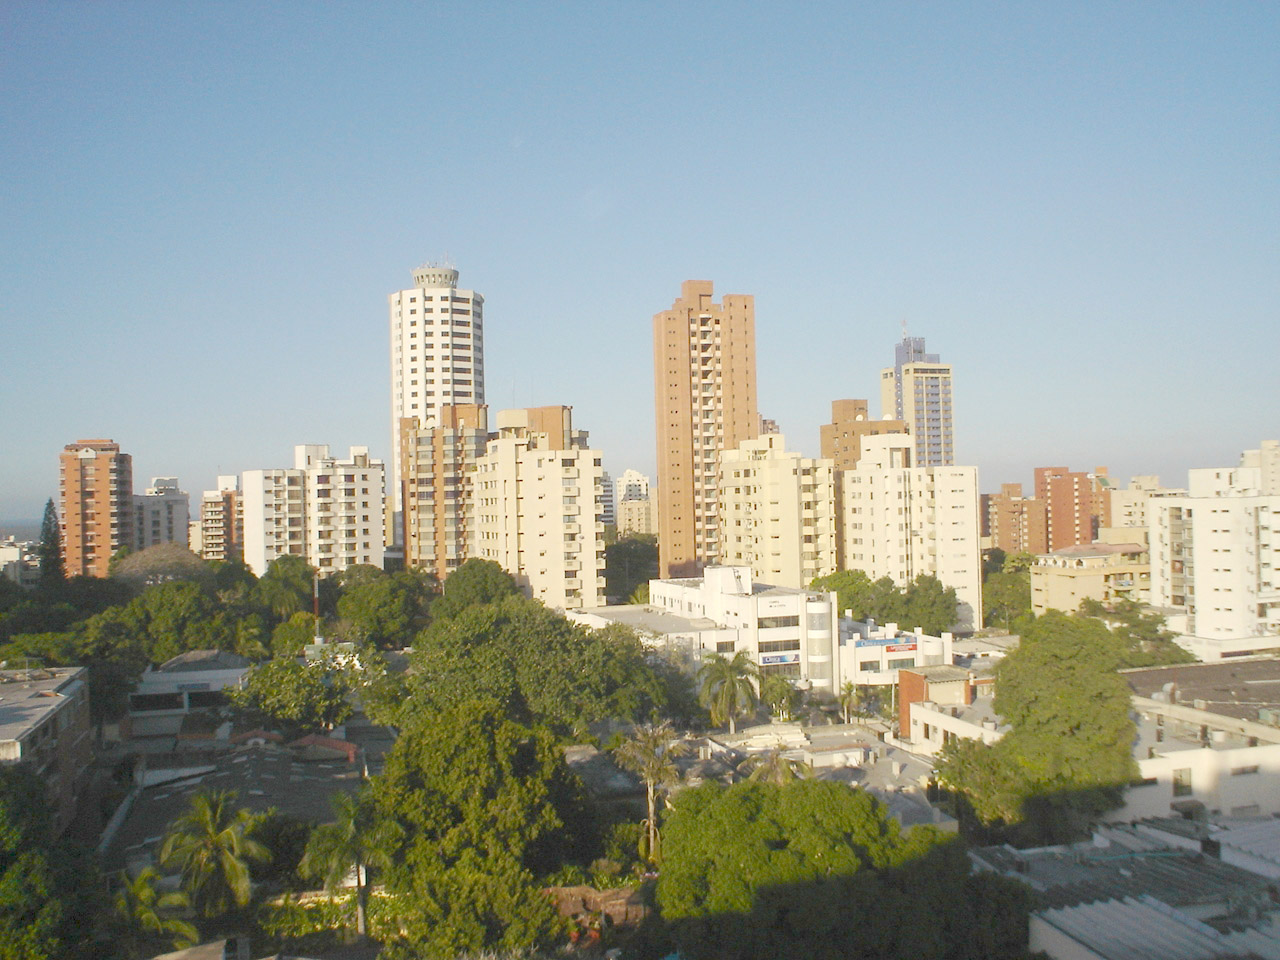 Skyline And Tall Towers Of Barranquilla Colombia Image